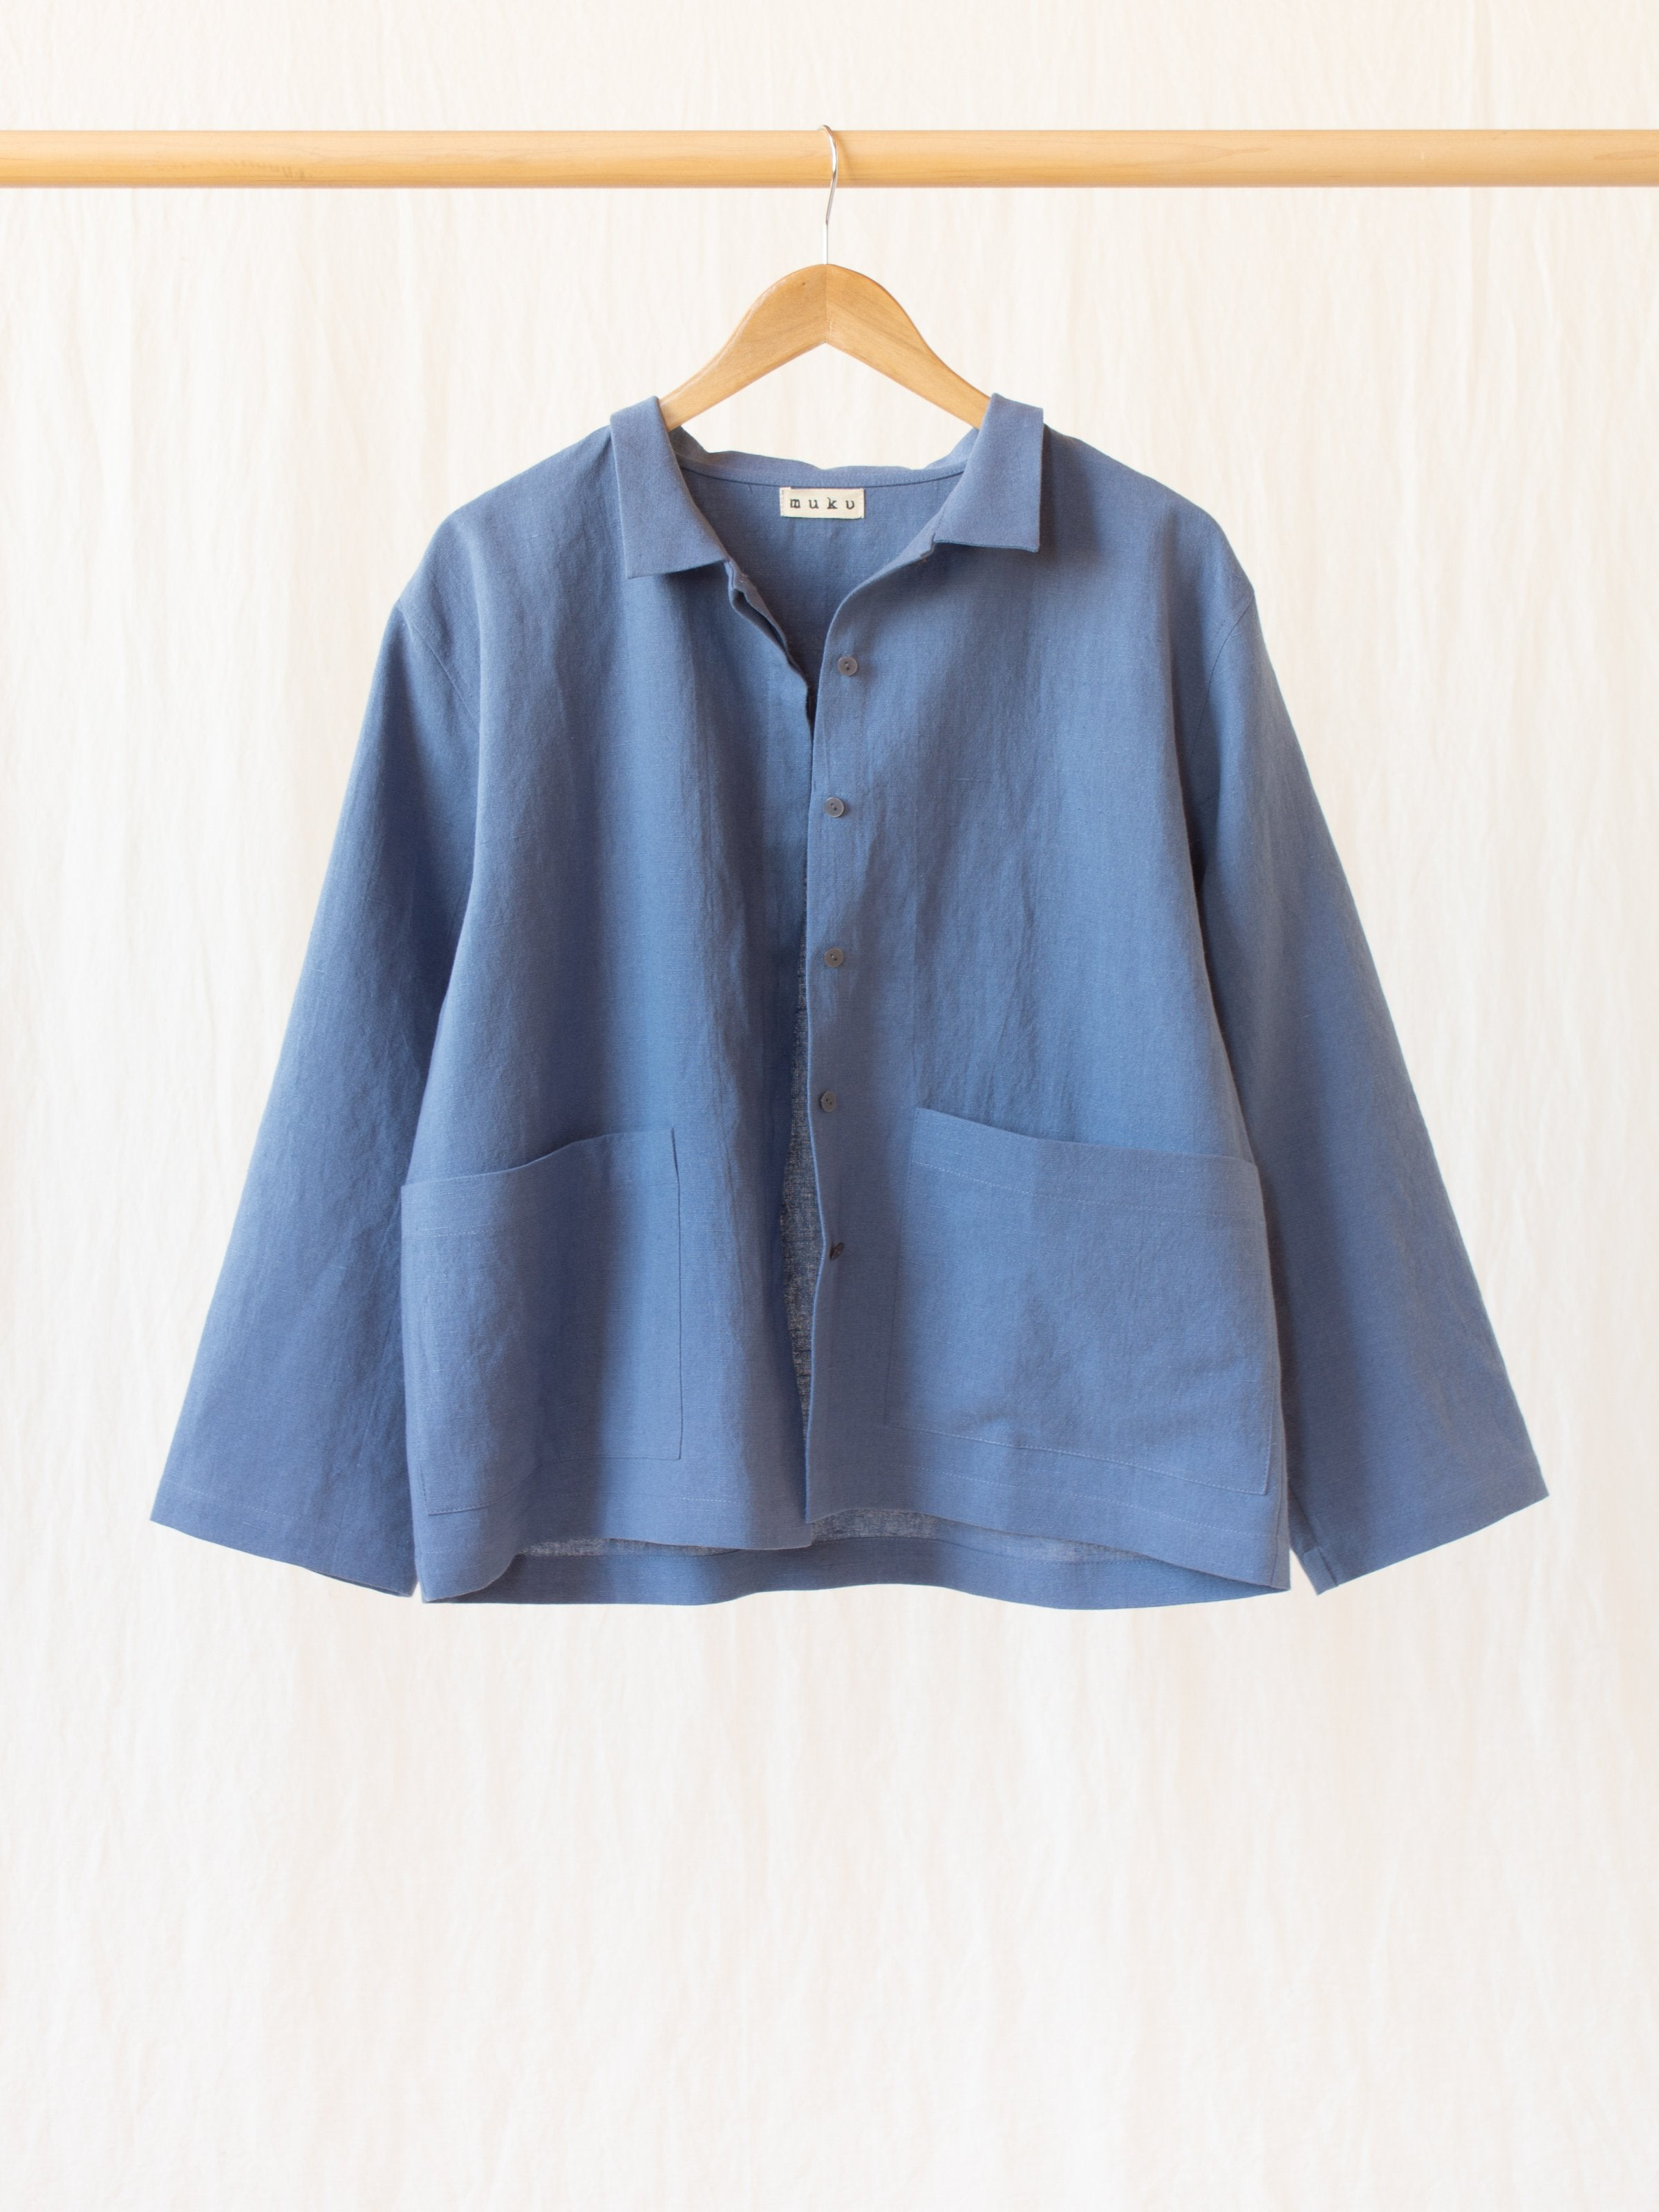 Namu Shop - muku Li / Co Shirt Jacket - Pale Indigo